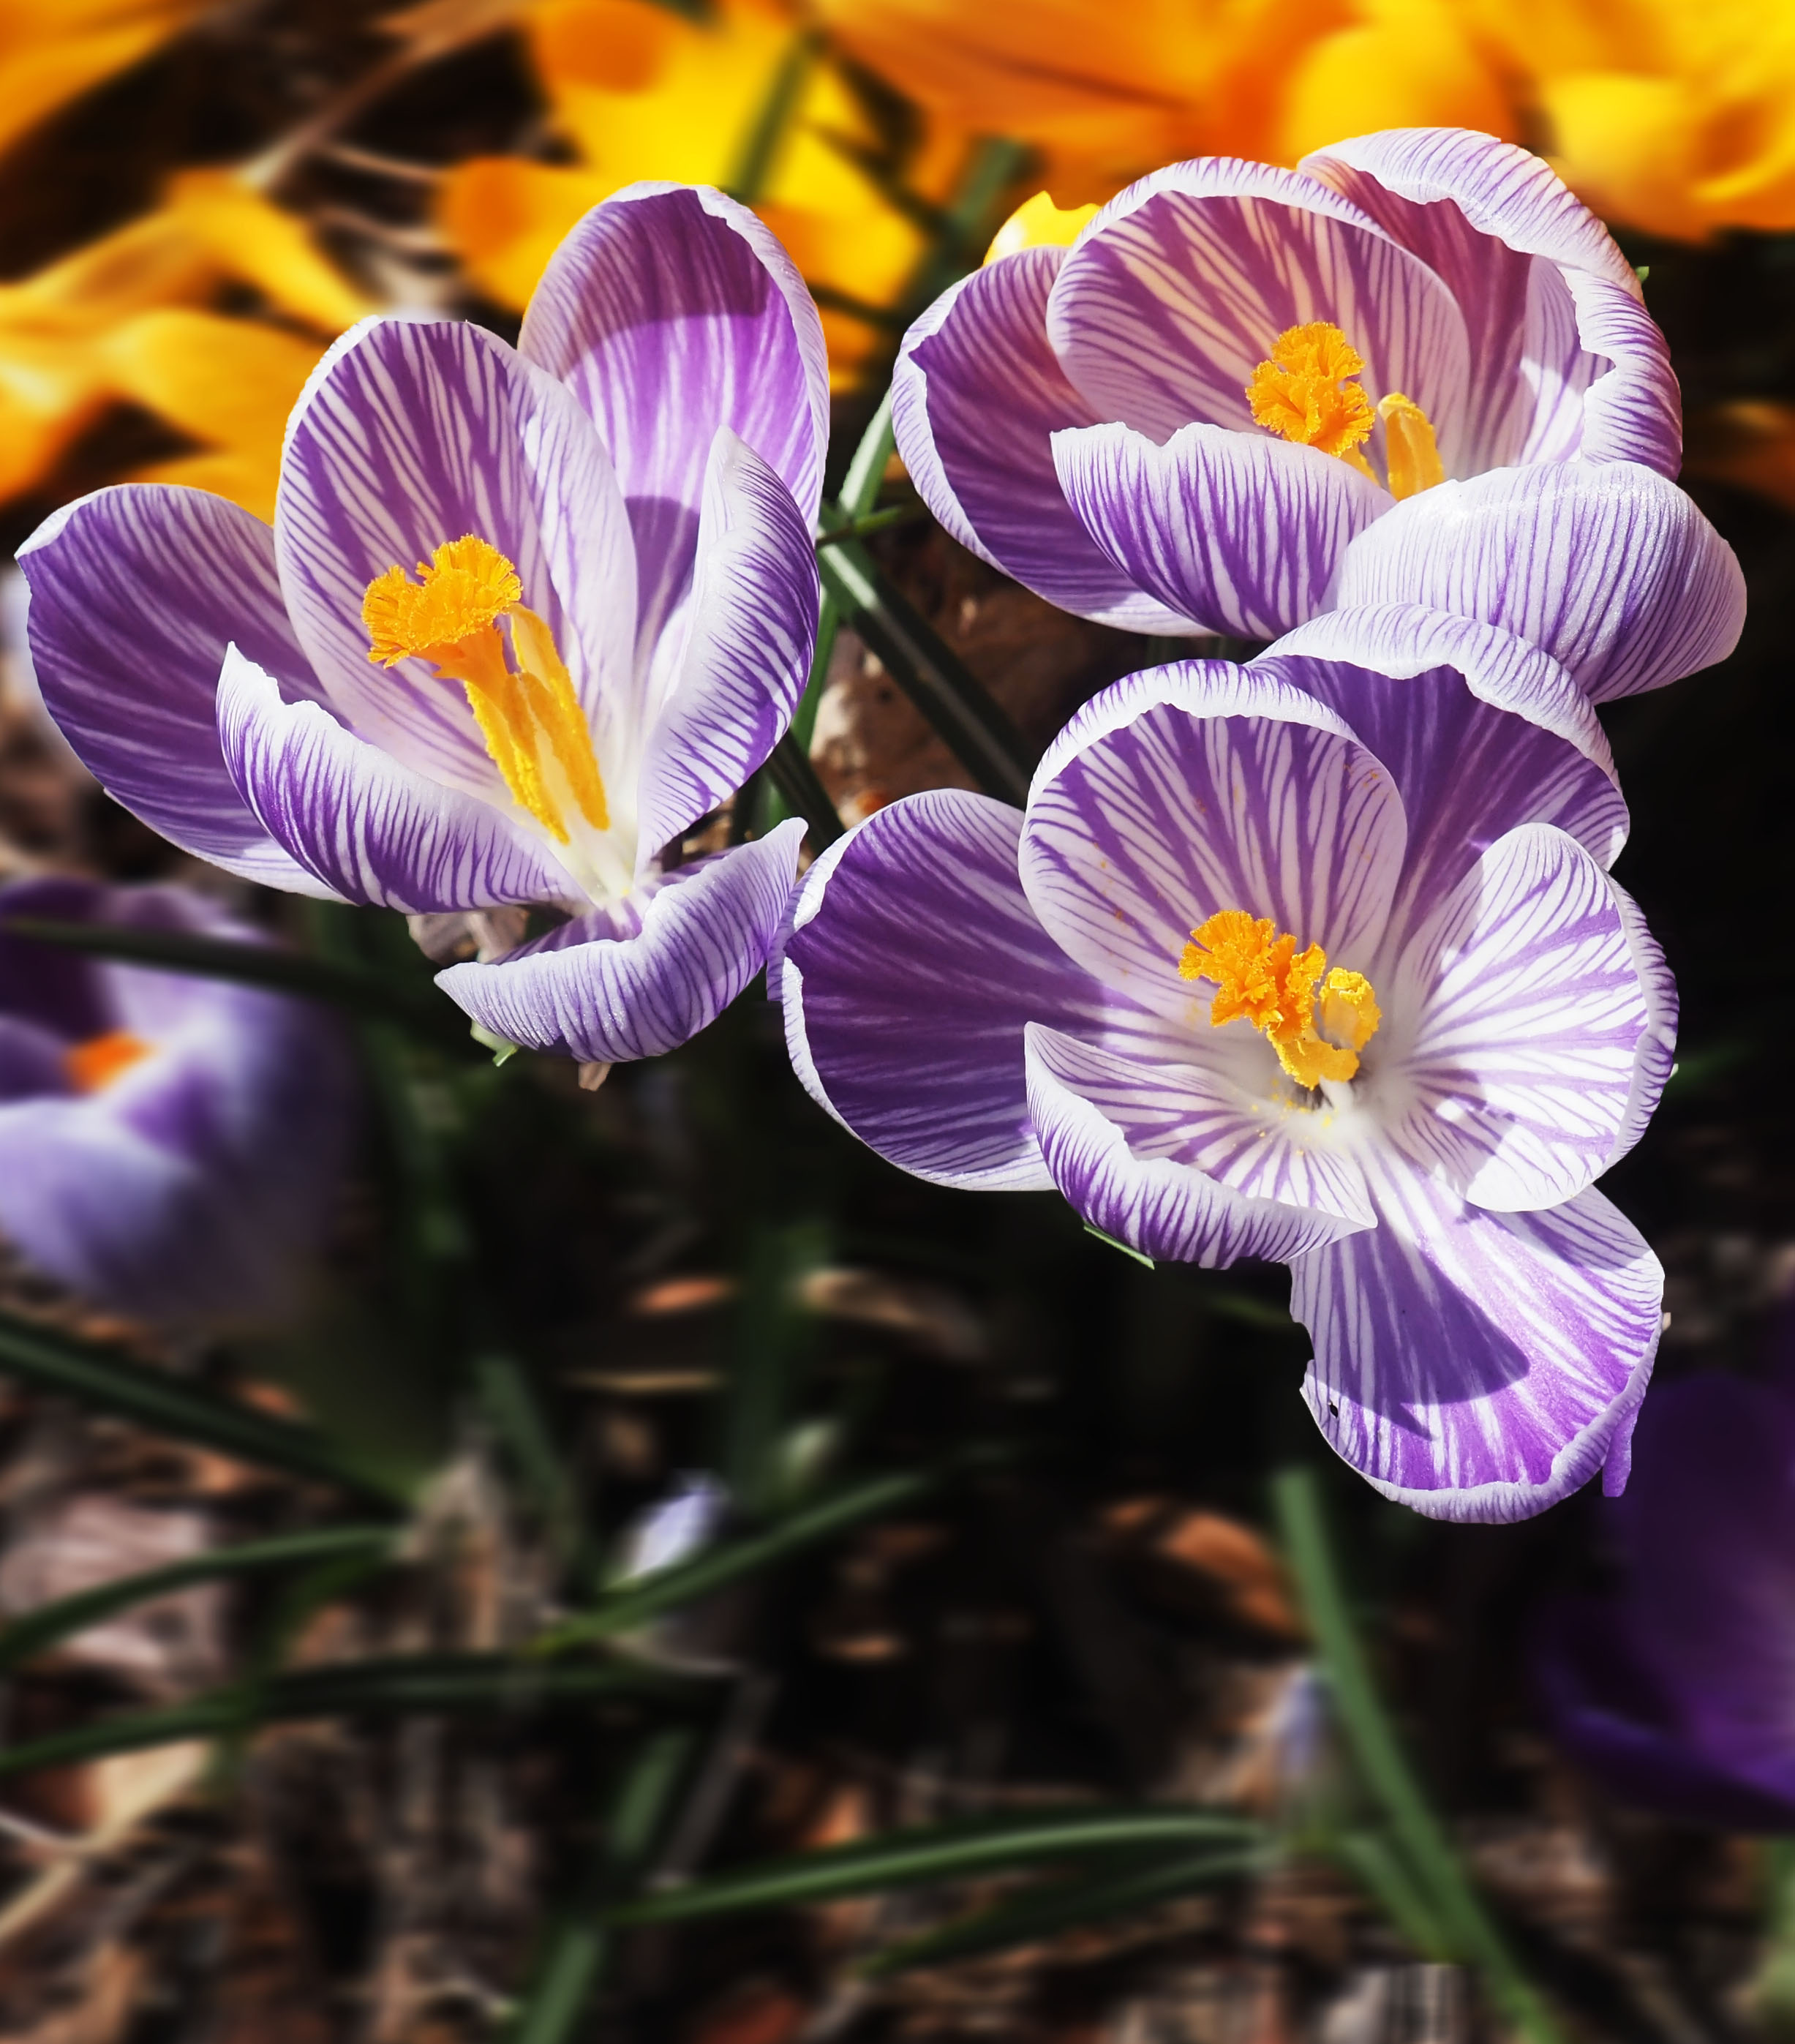 Three Crocus